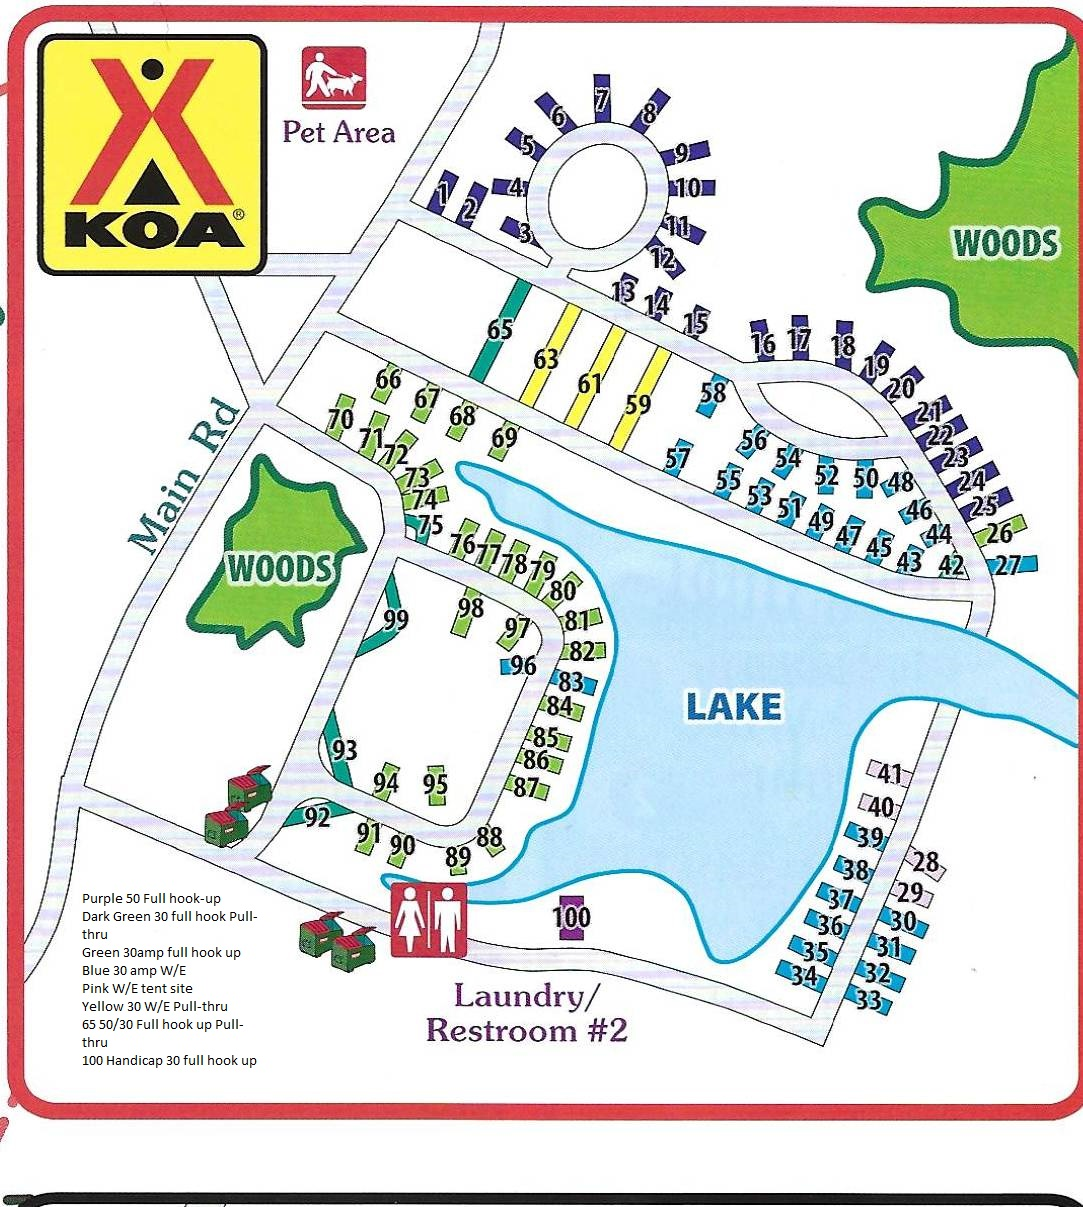 Koa Campgrounds Map Batesville, Indiana Campground | Batesville KOA